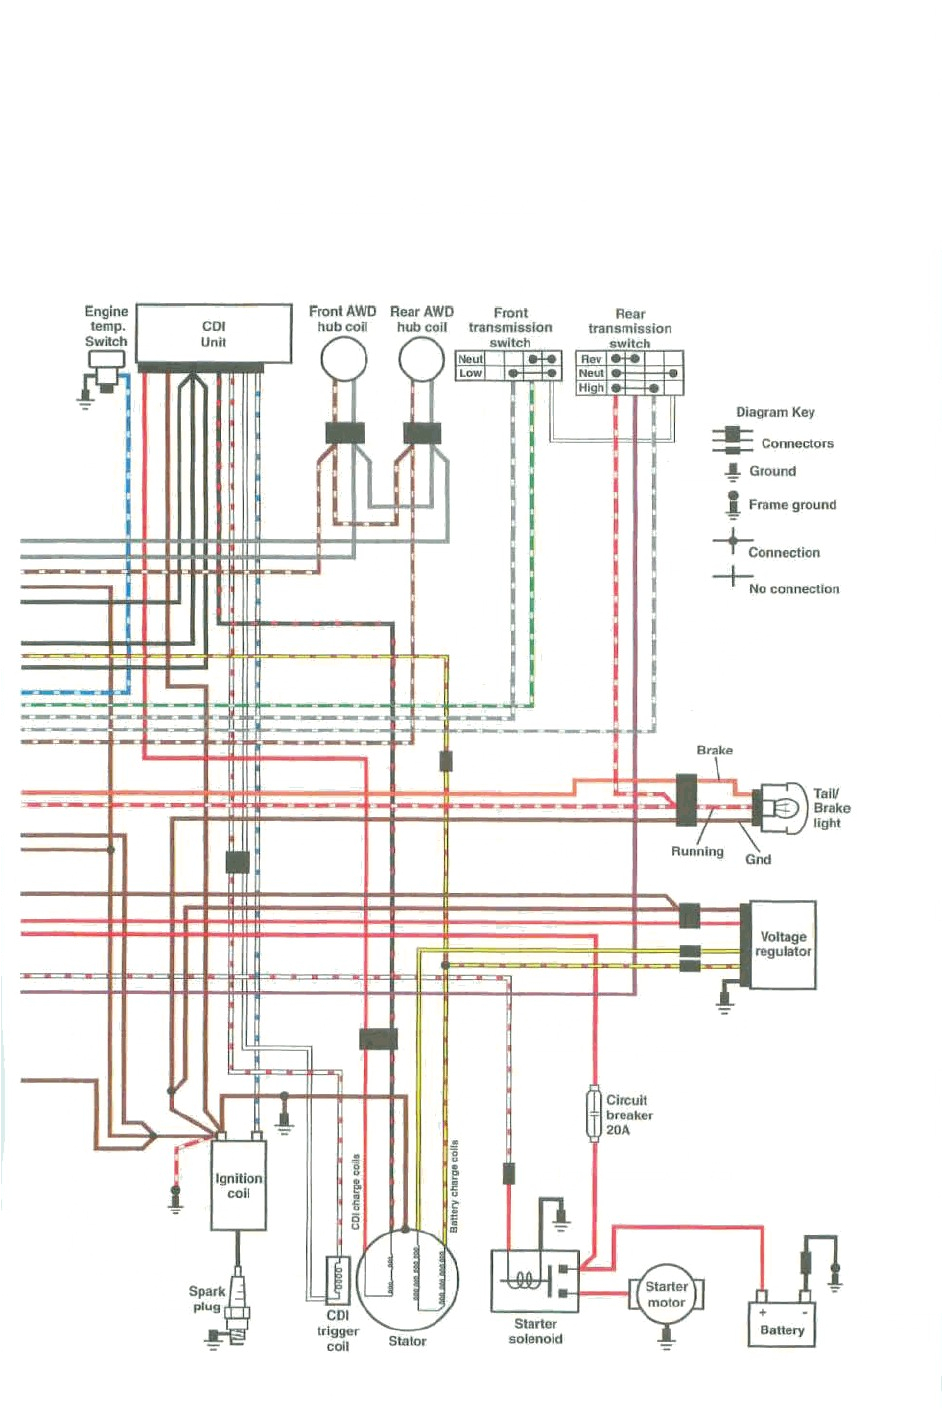 wiring diagram 2006 polaris sportsman 90 wiring diagram sheet 2000 sportsman 90 wiring diagram 2006 polaris